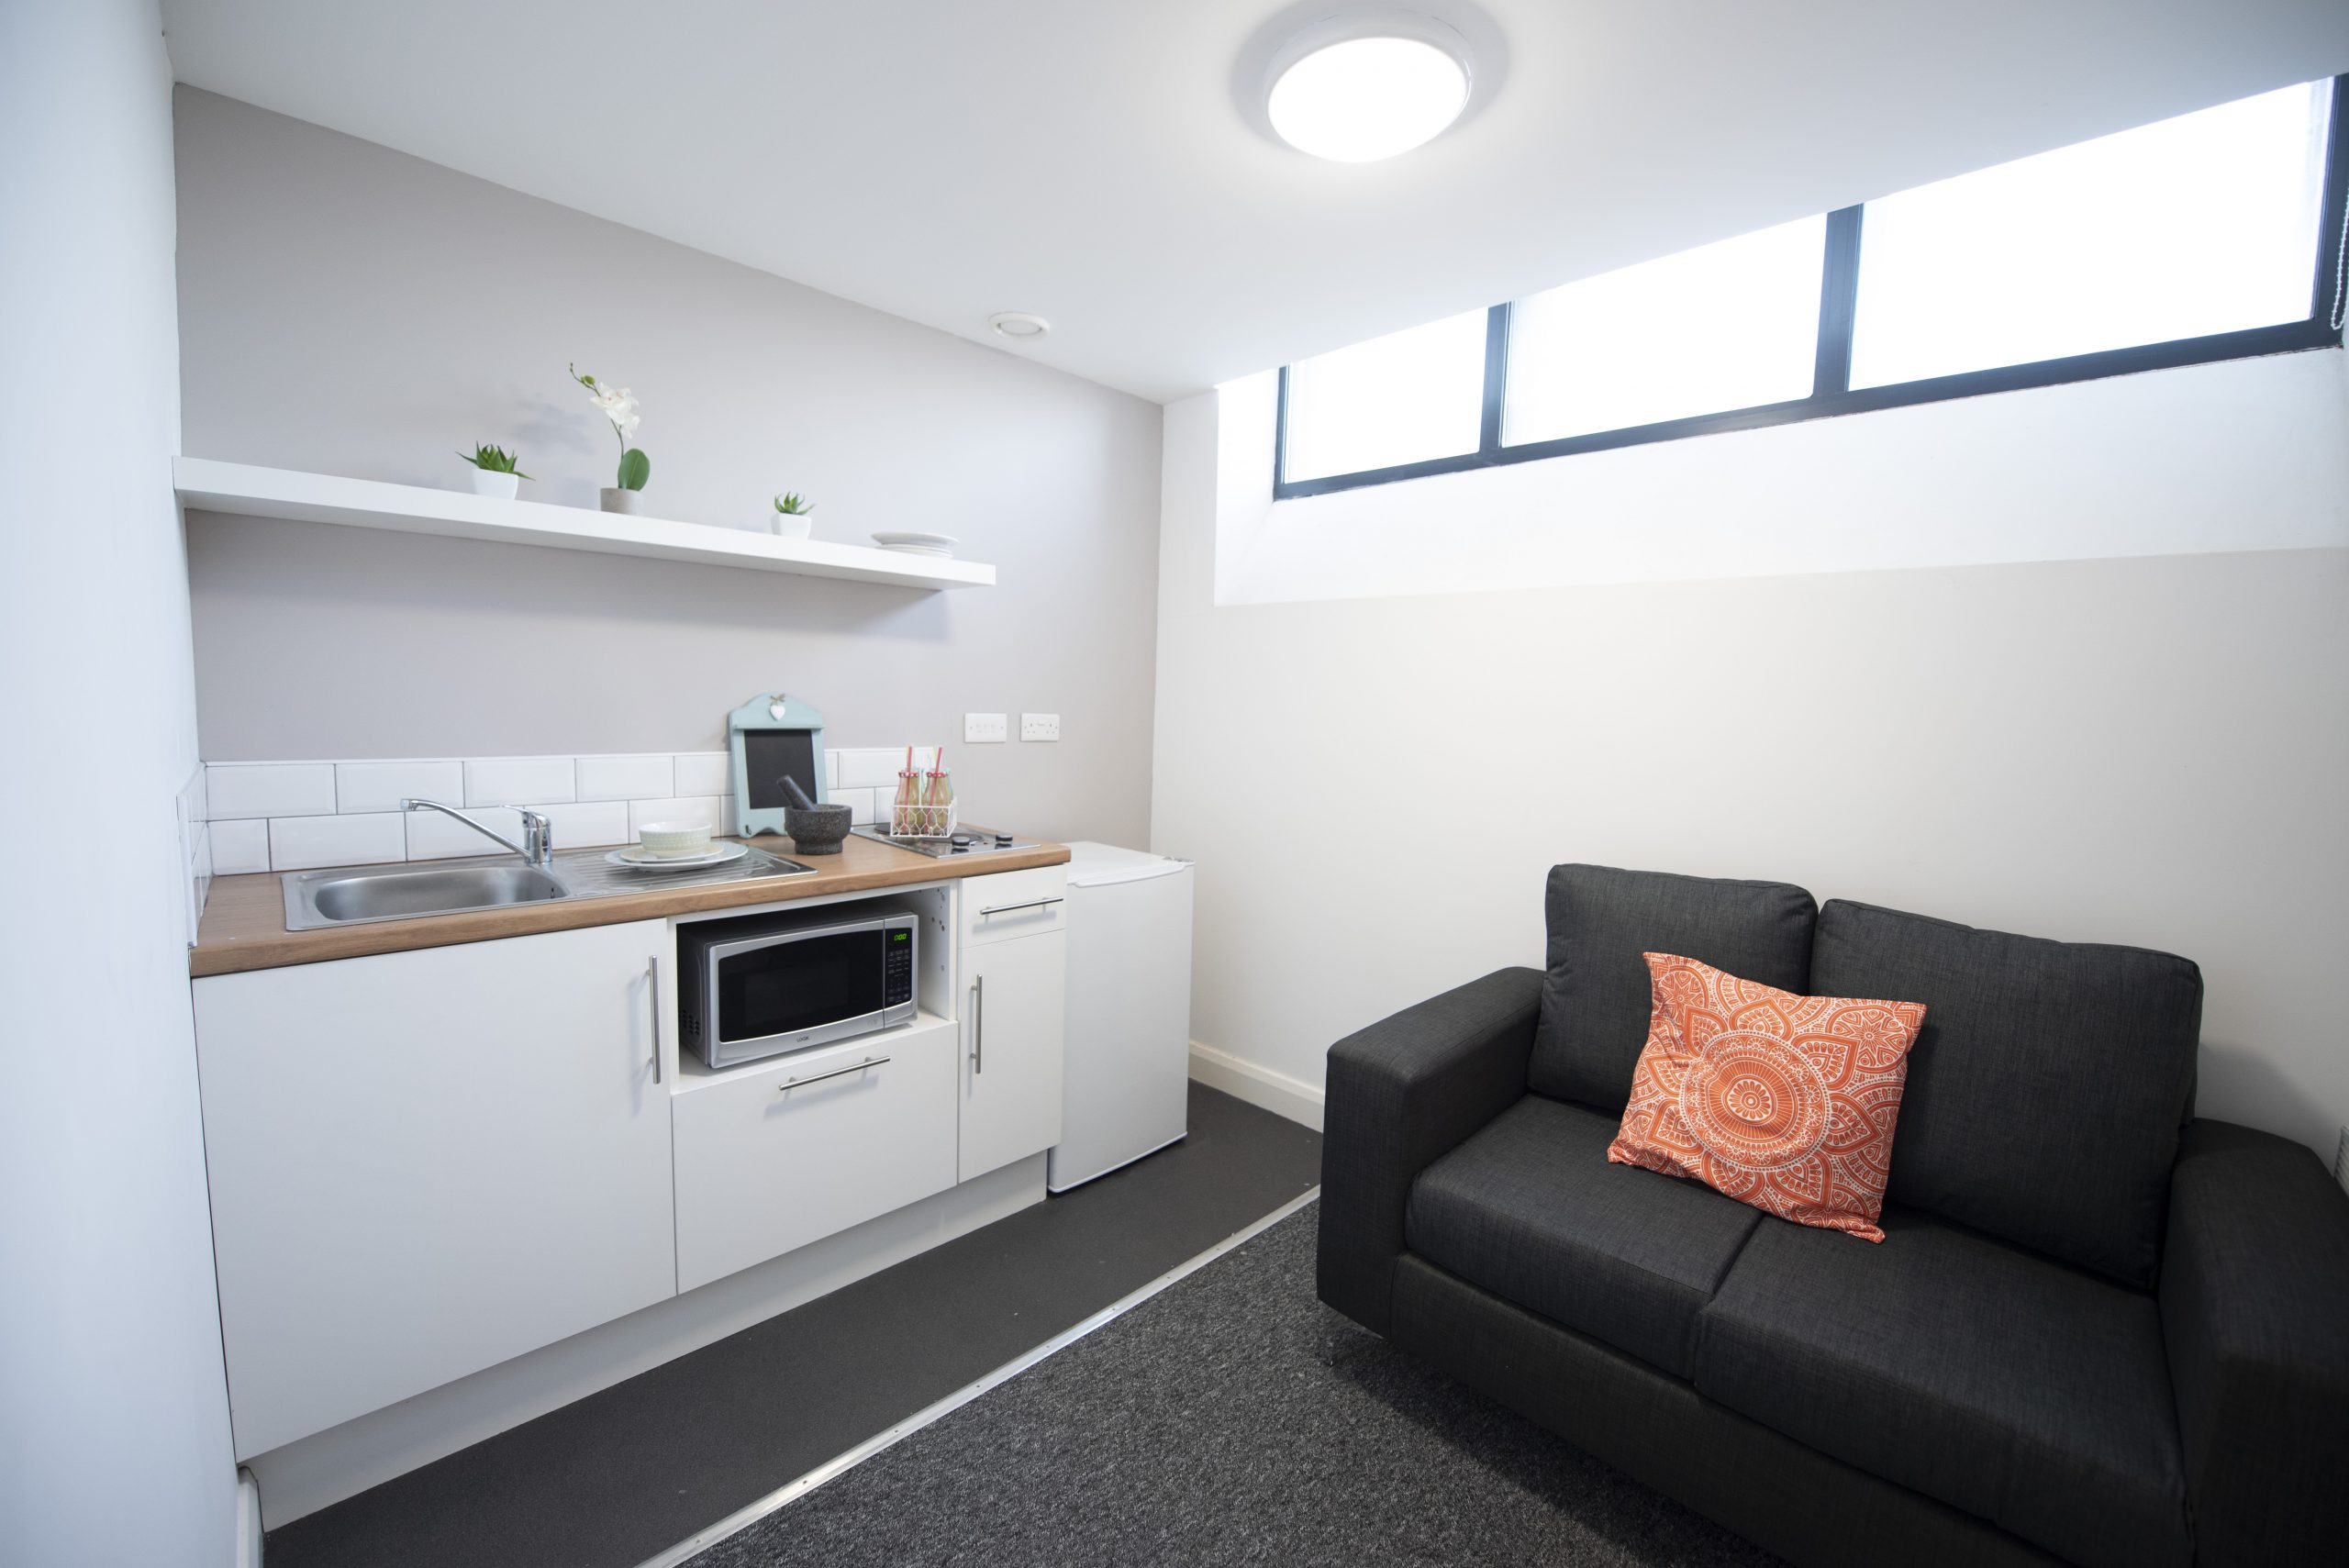 kitchen and living area in studio apartment